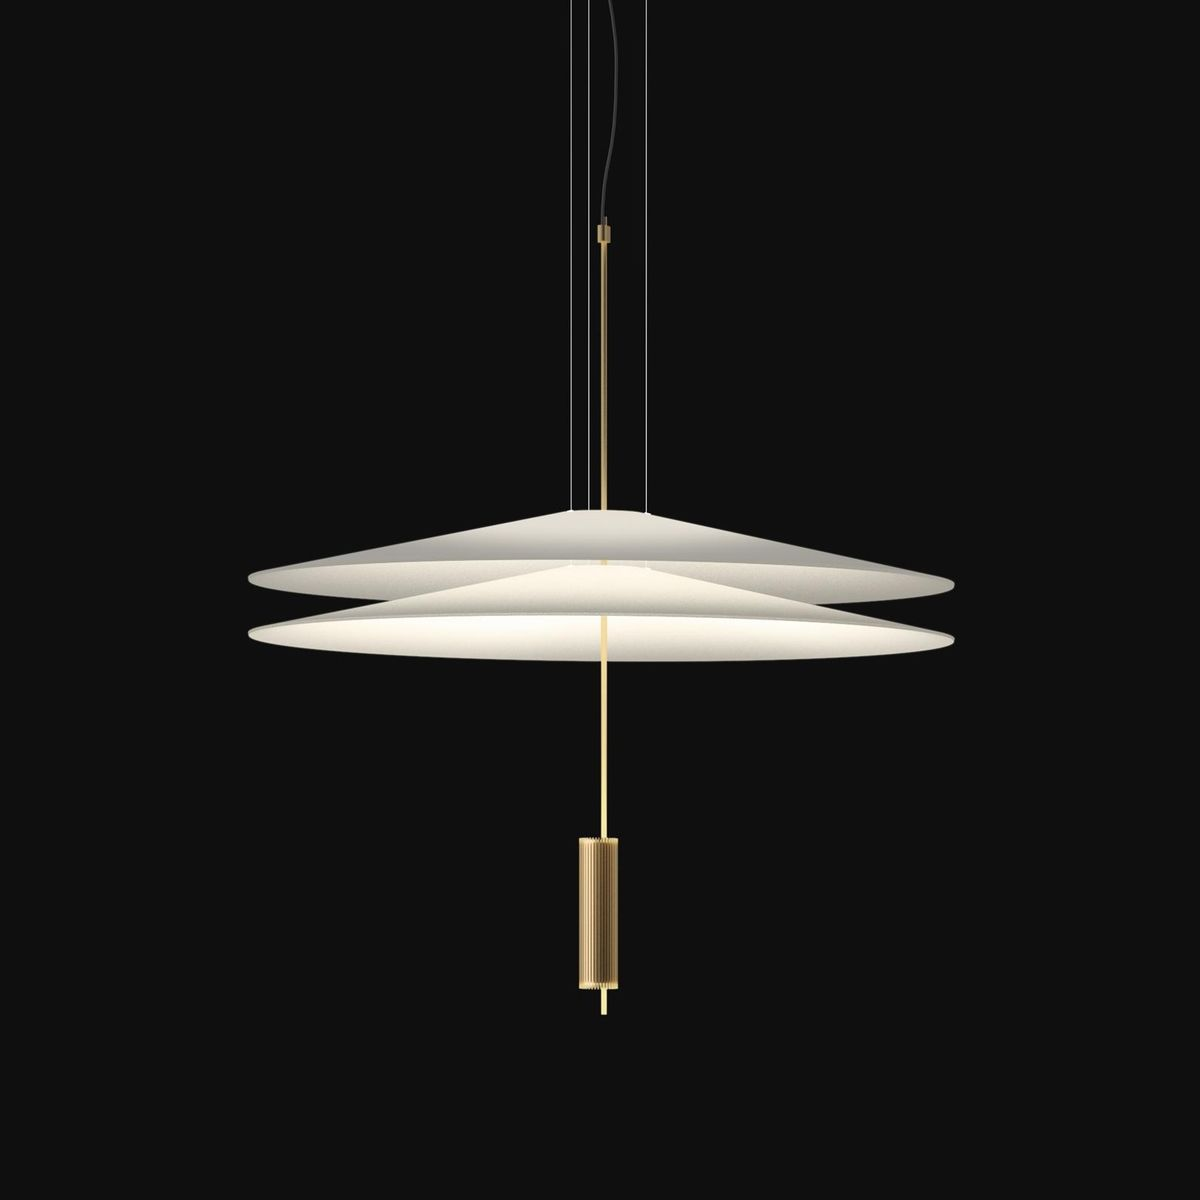 Flamingo 1510 led suspension lamp vibia for Suspension 4 lampes